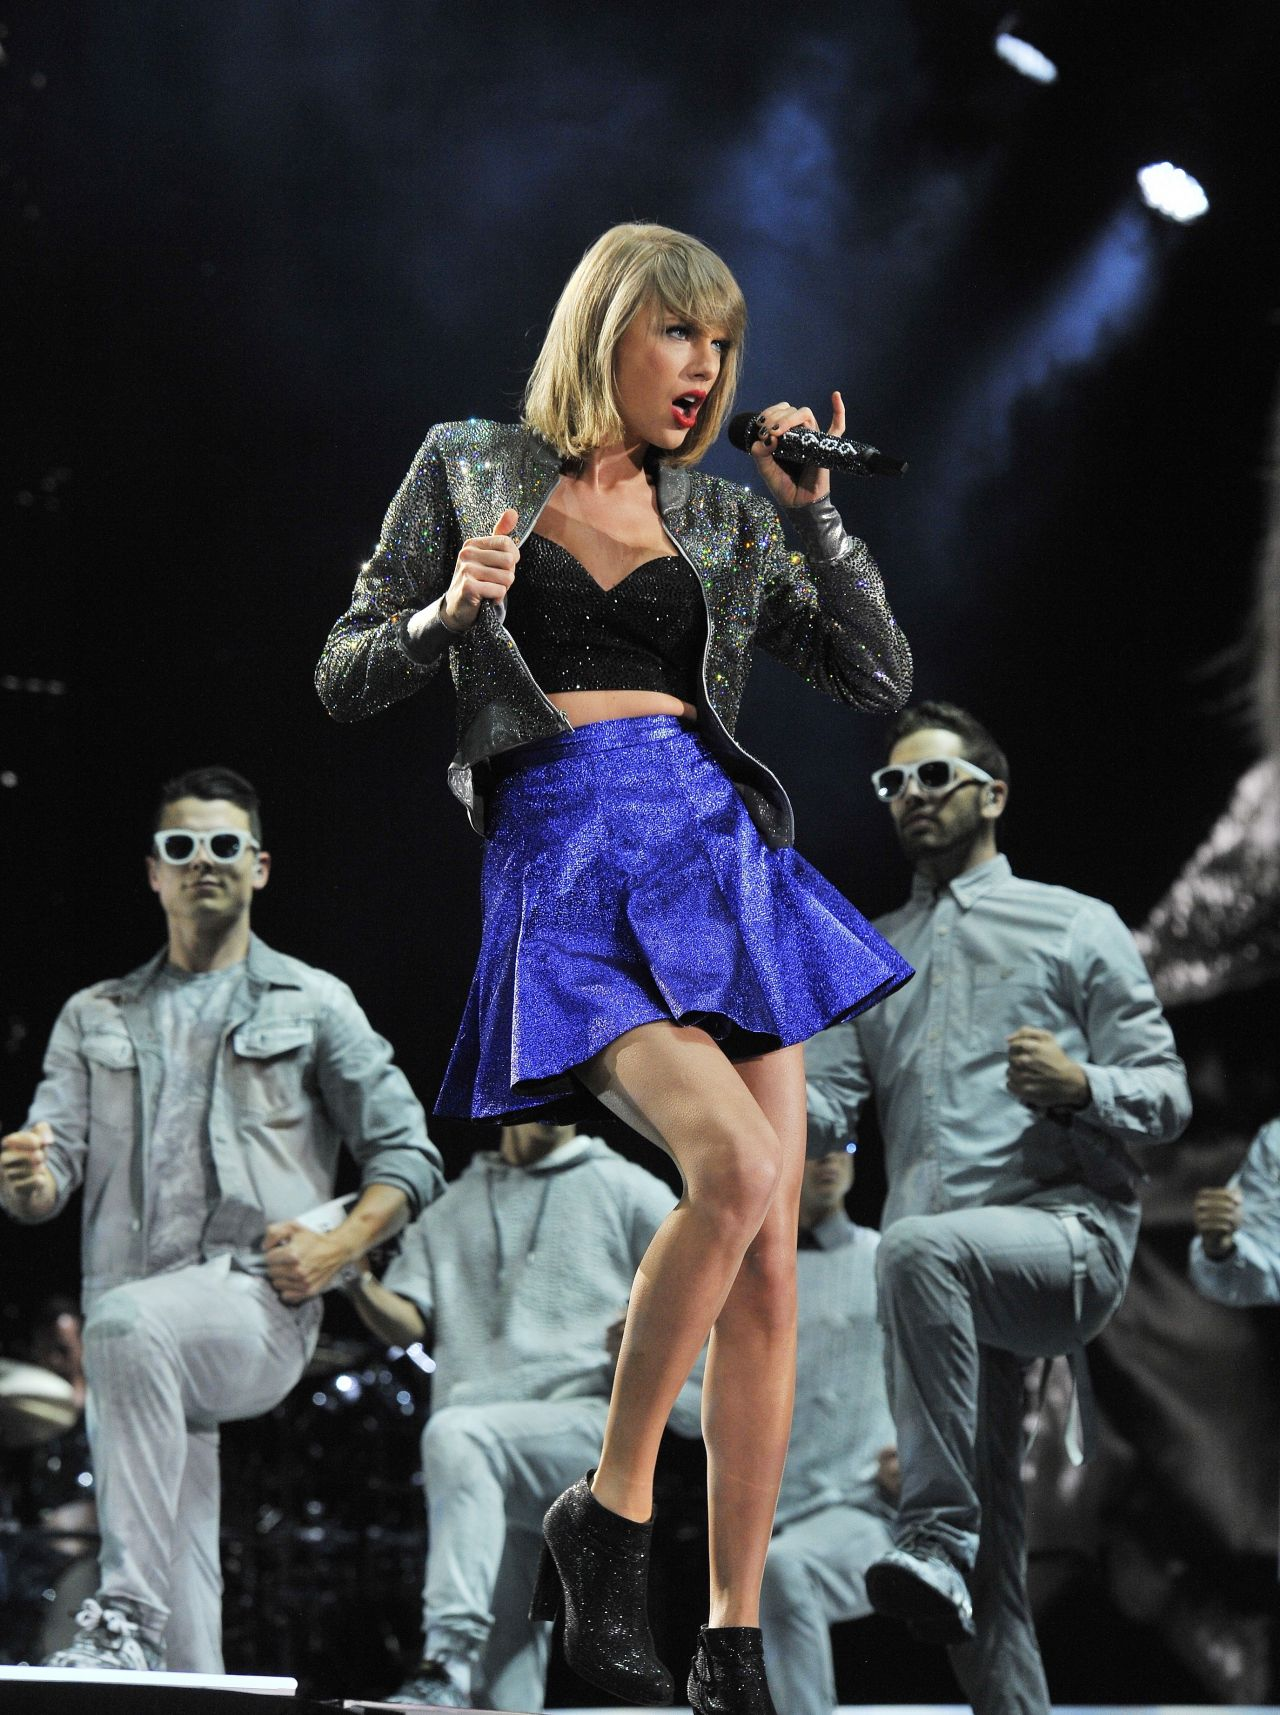 Taylor swift performs at 1989 world tour concert in detroit may 2015